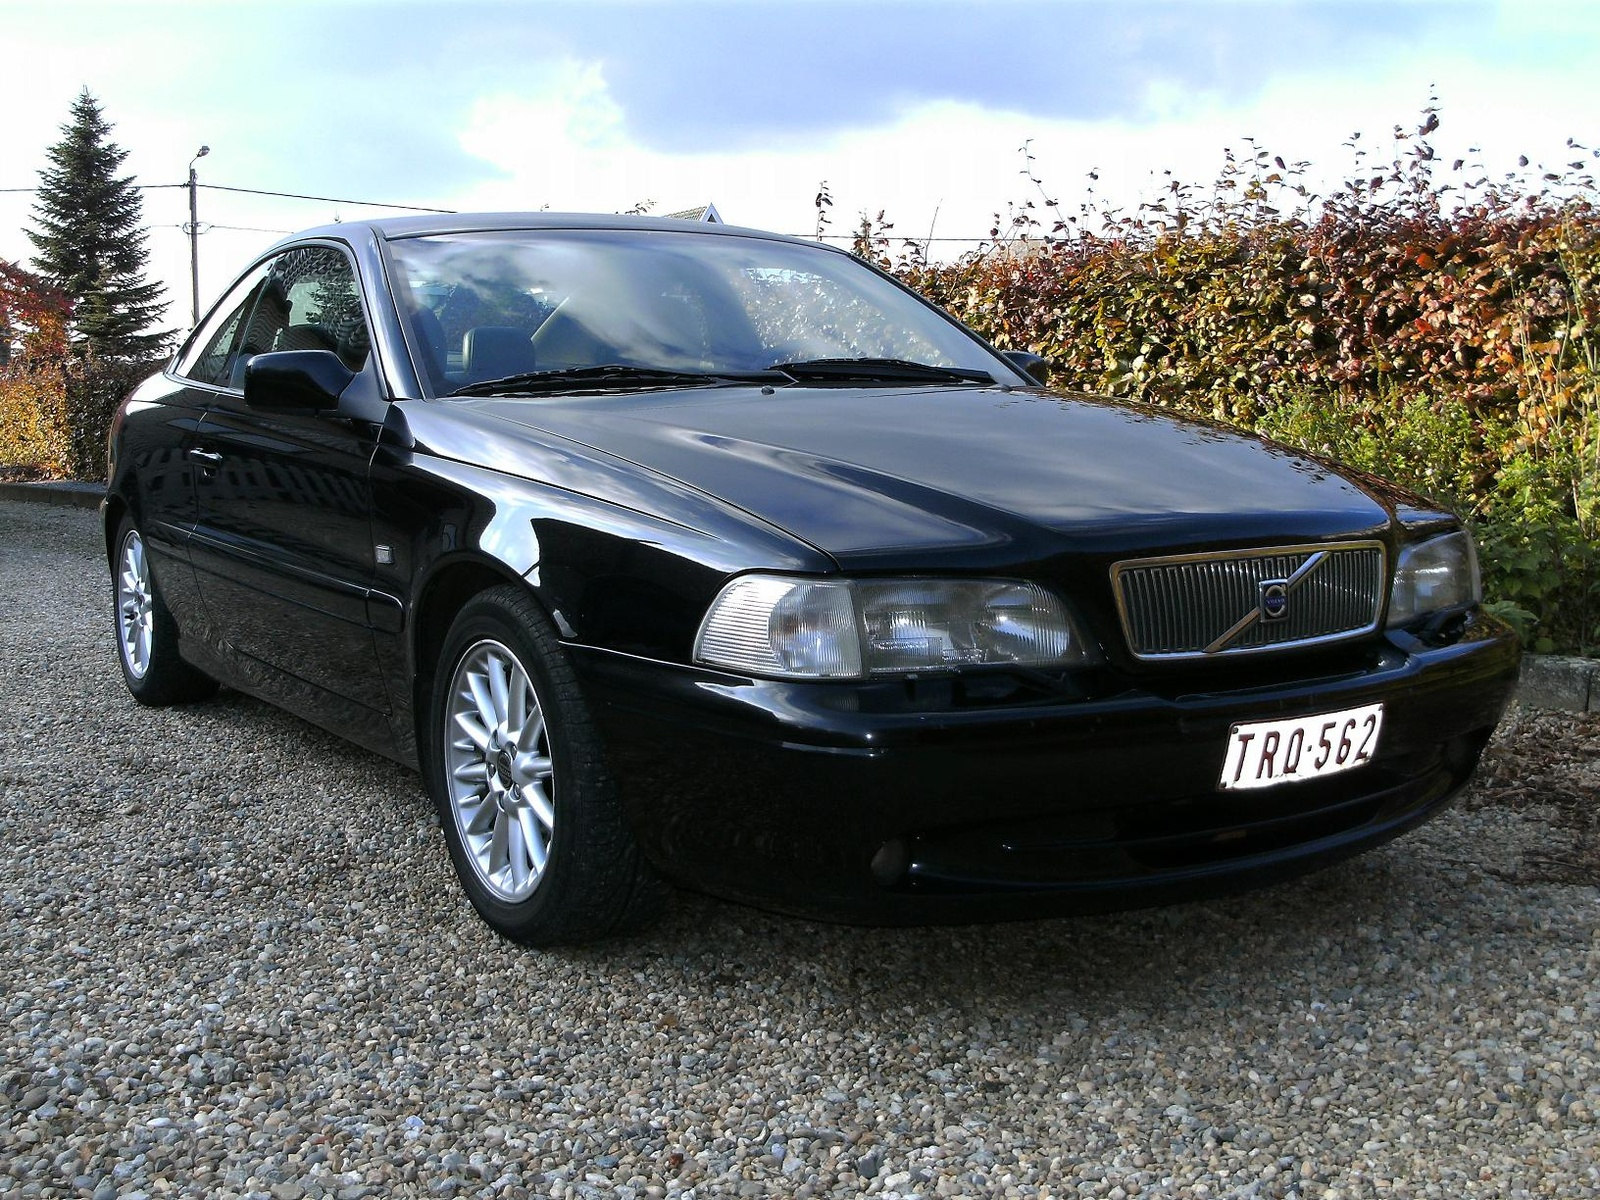 2000 Volvo C70 2 Dr HT Turbo Coupe picture